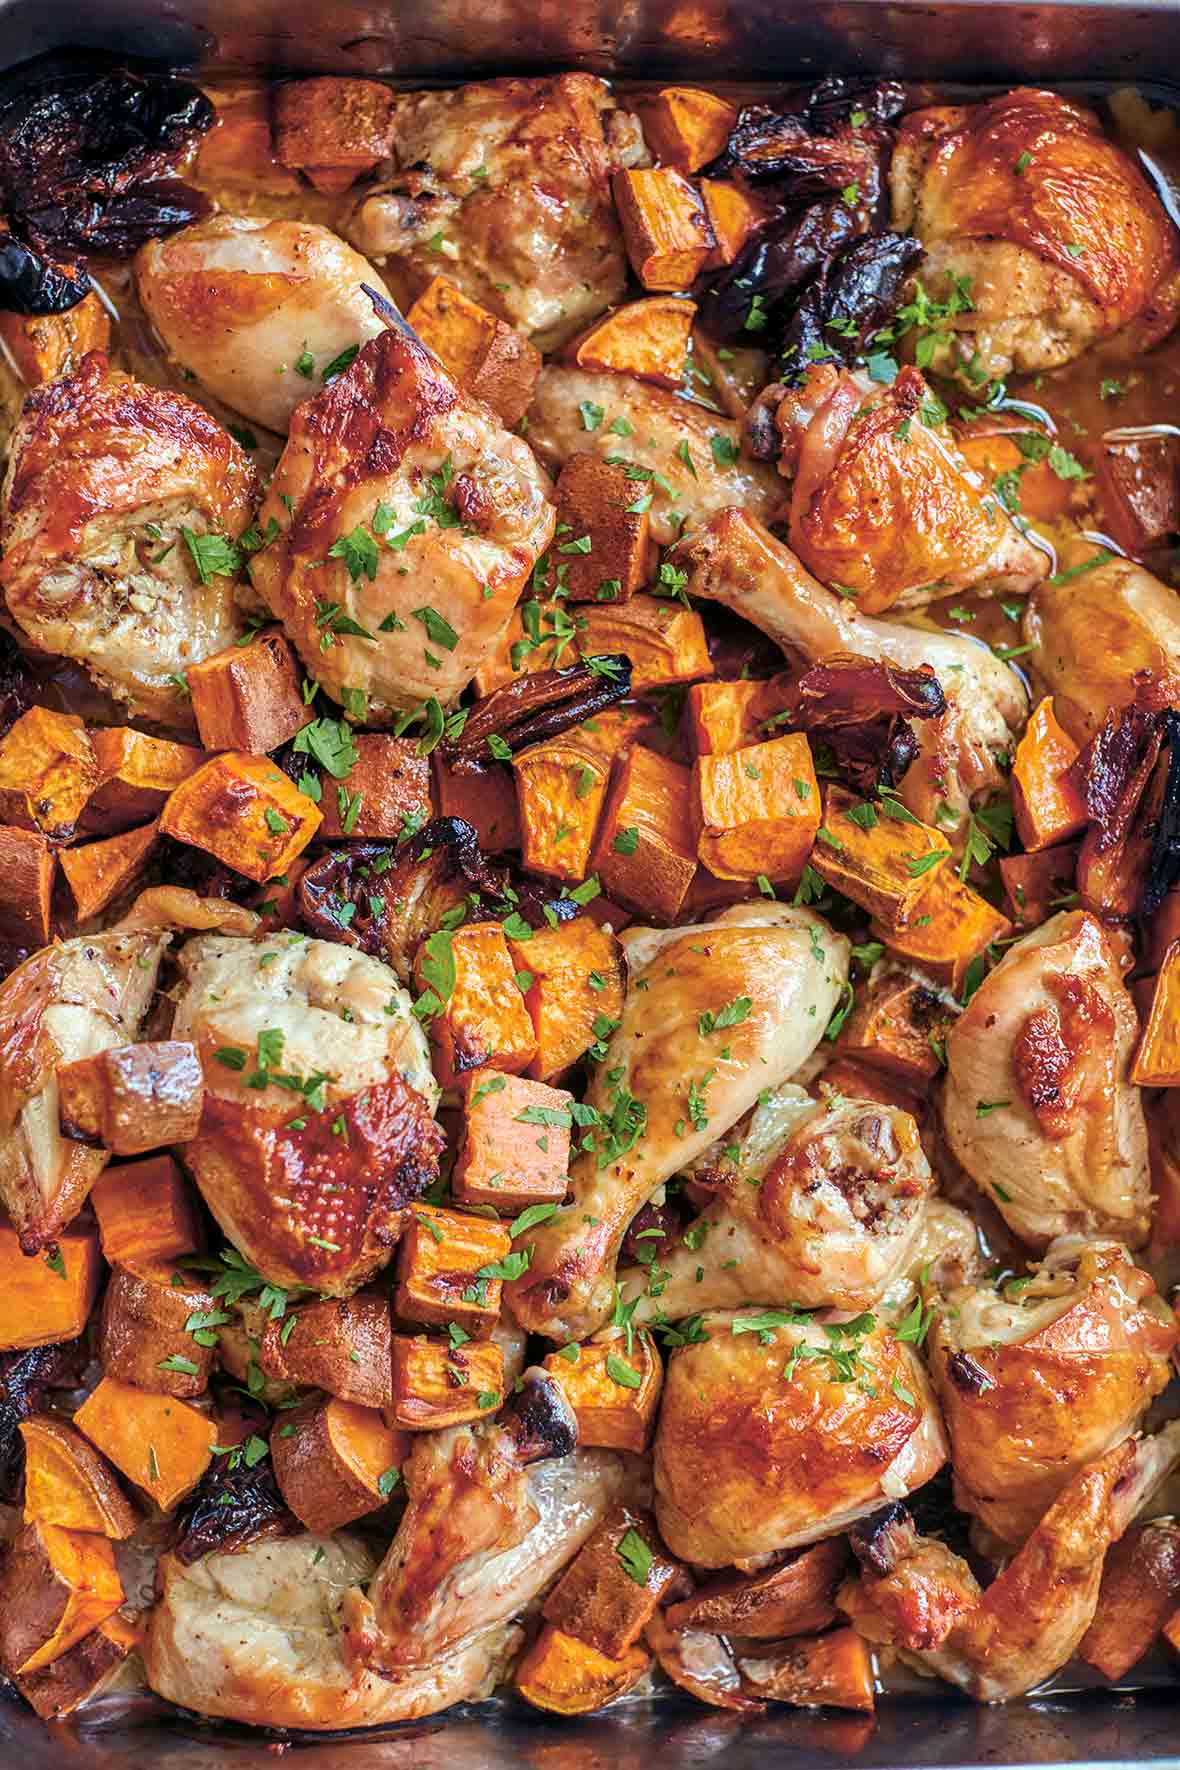 A sheet pan of Rosh Hashanah celebration chicken--roasted chicken pieces, sweet potatoes, onions, parsley